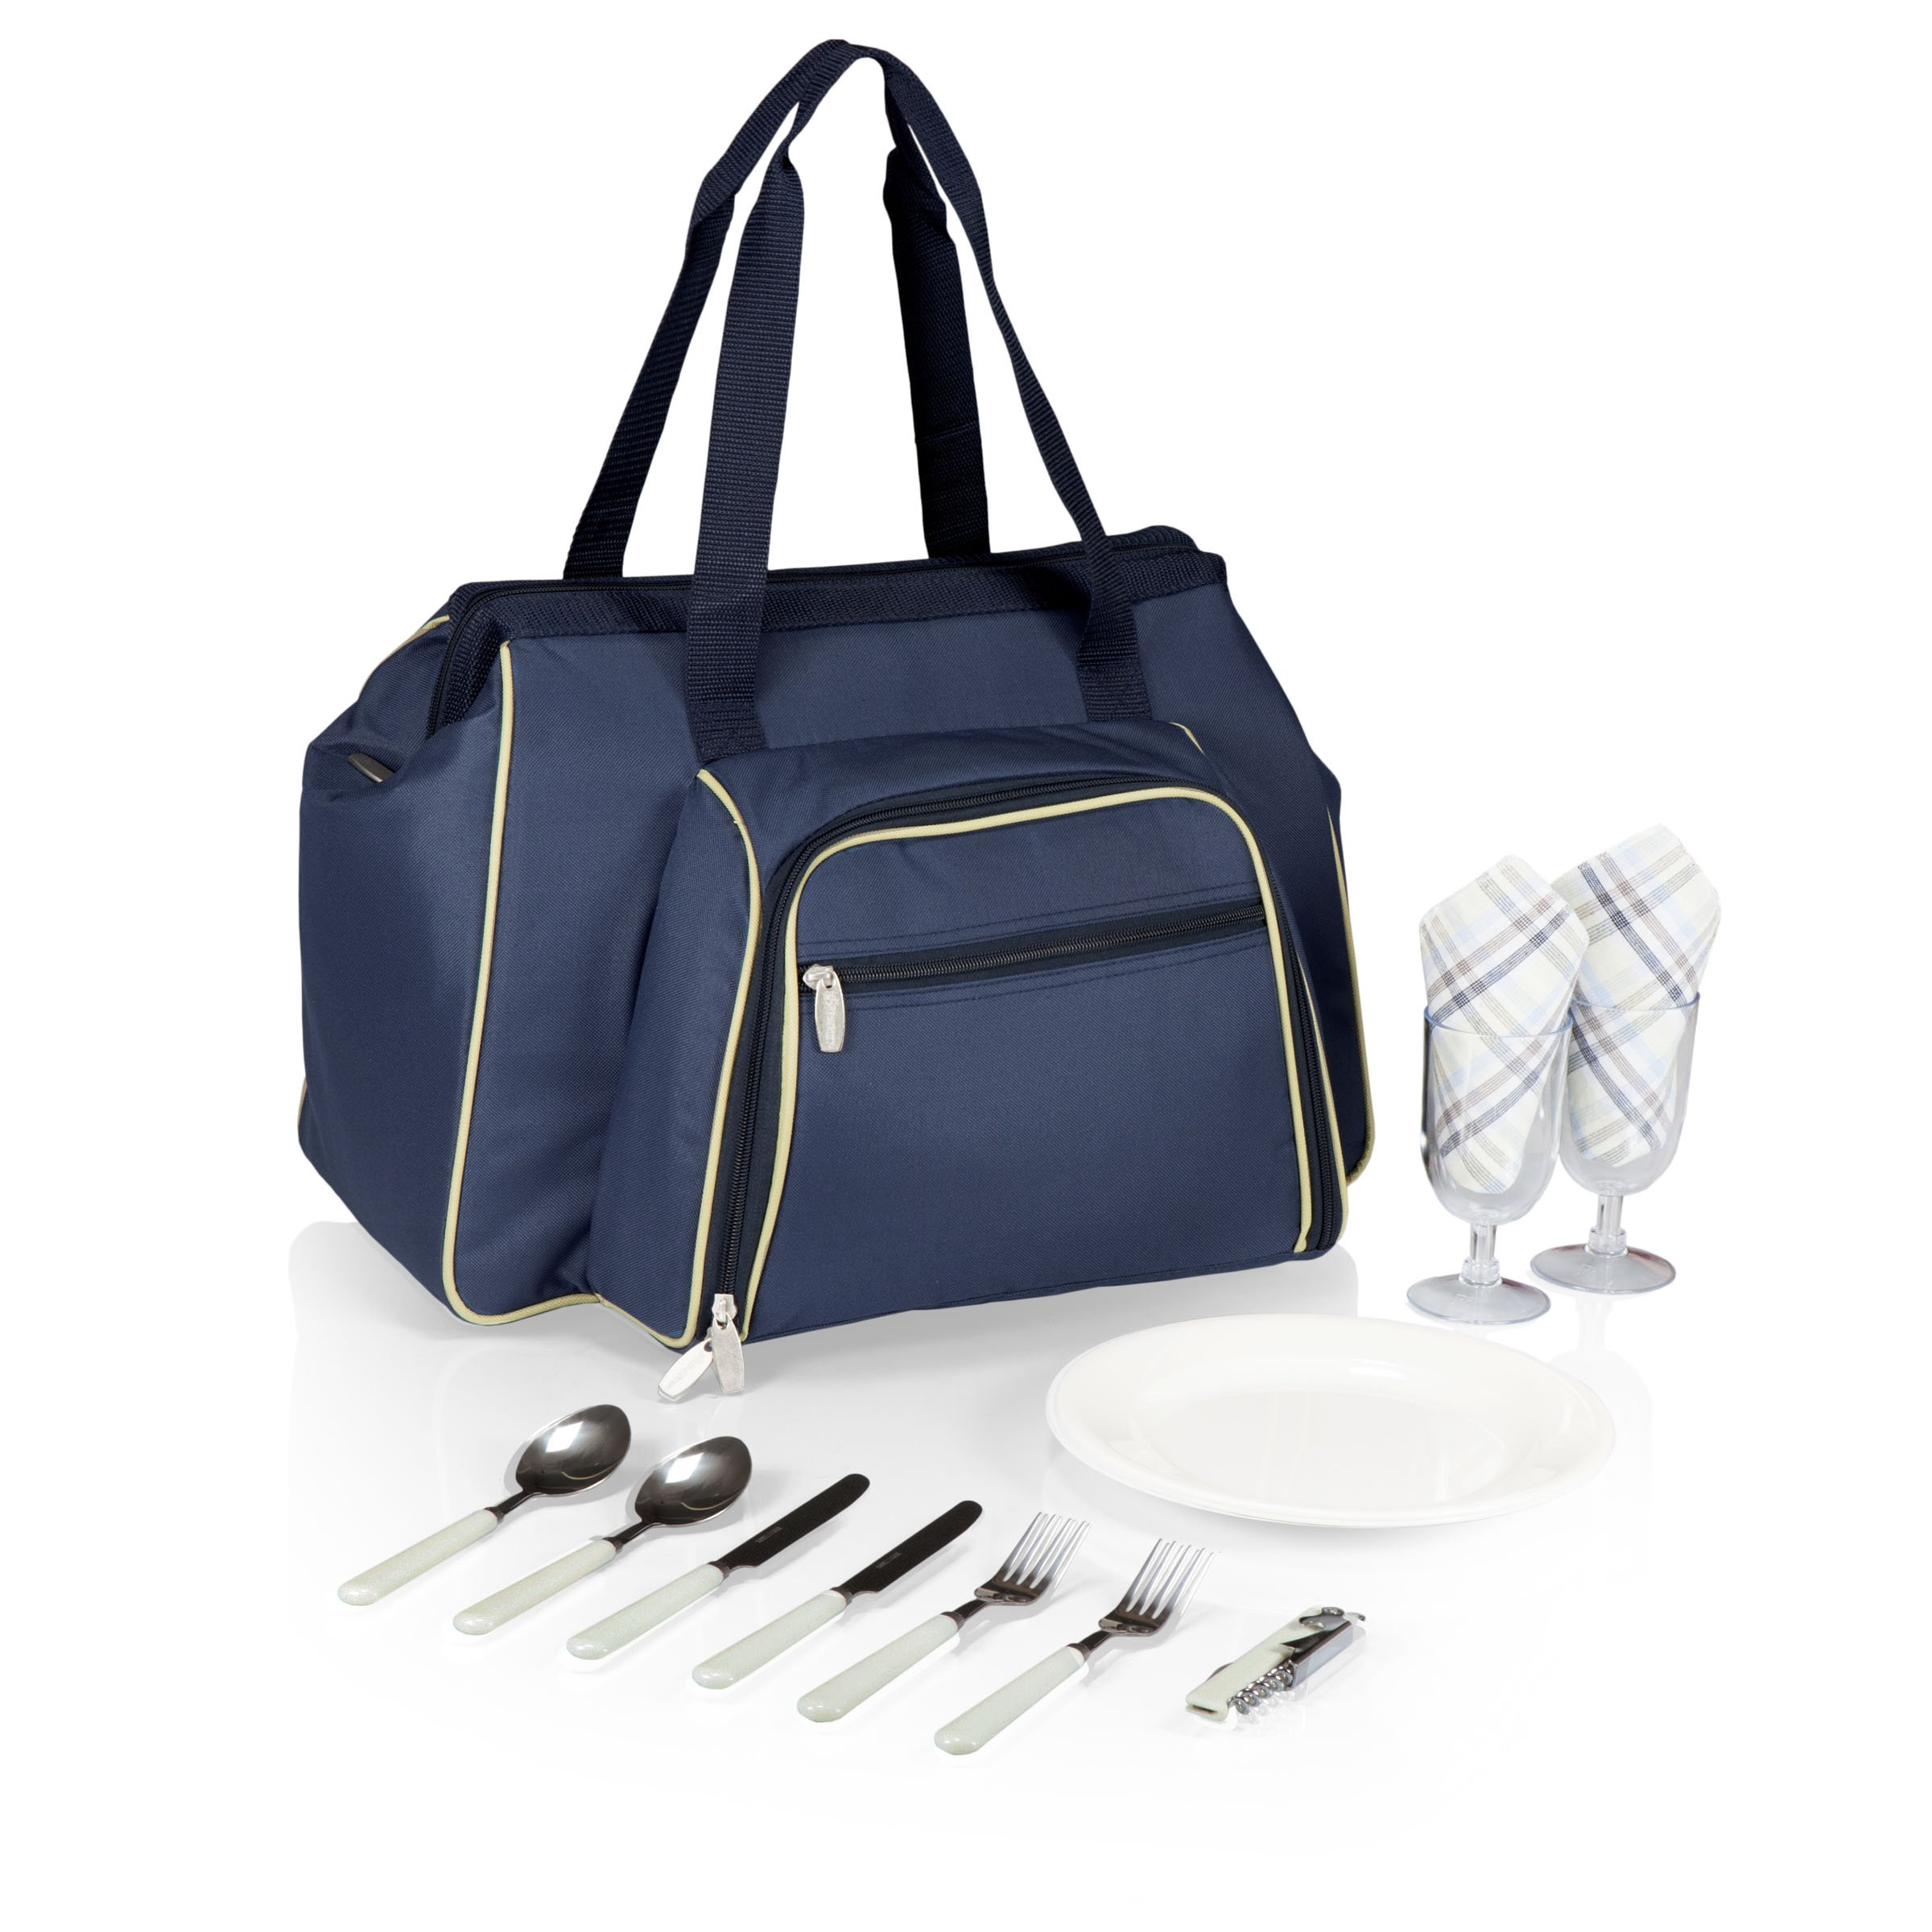 Picnic Time Toluca Insulated Cooler Tote, Navy